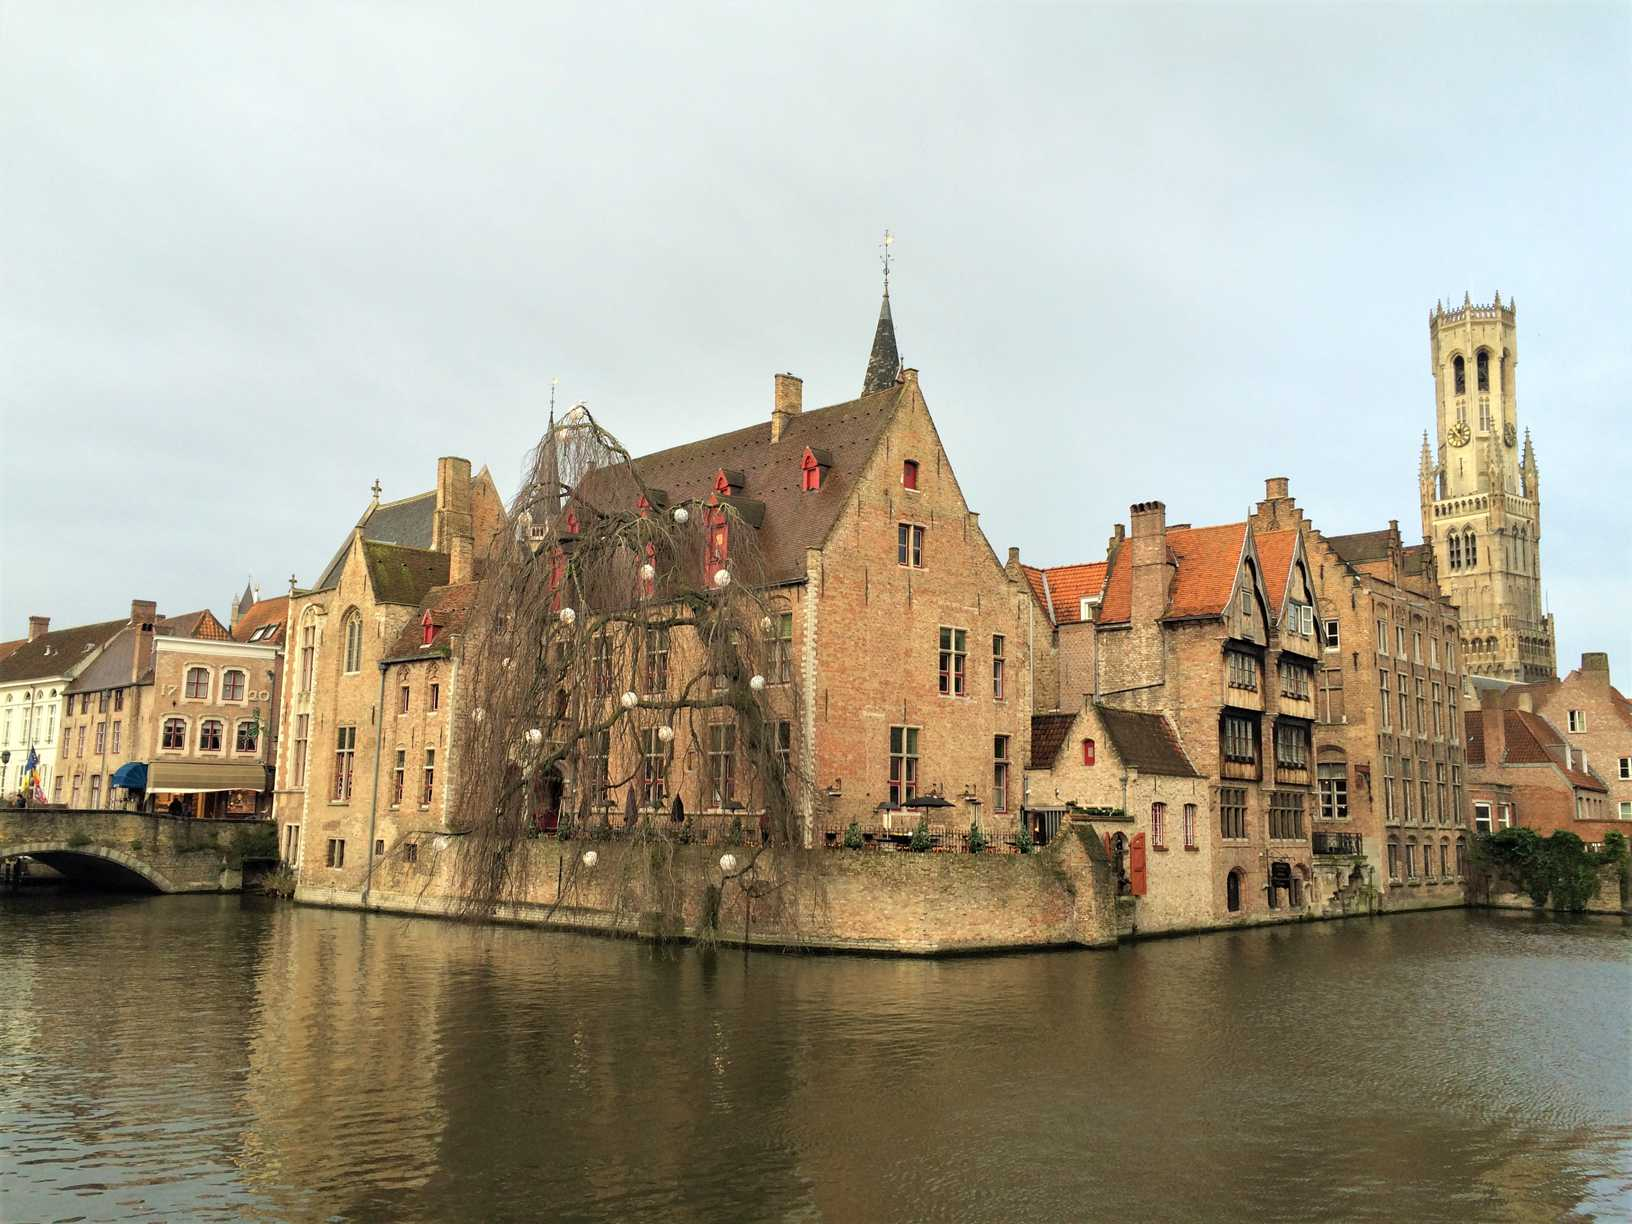 A picture of buildings on a canal in Bruges with a tower in the background.